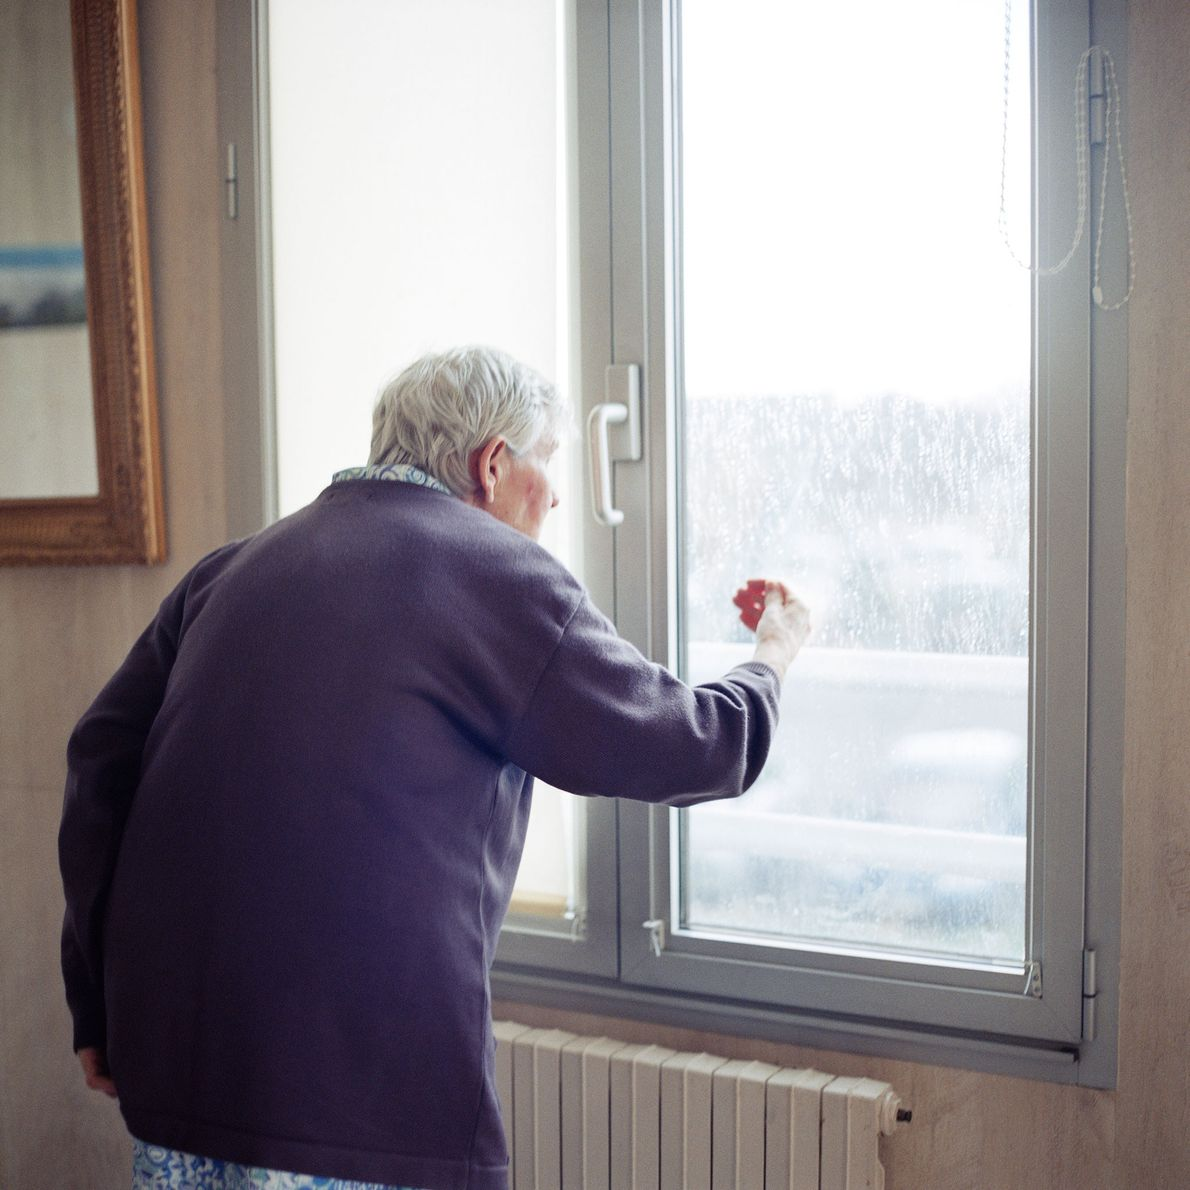 A resident looks out from a sealed window in the ward.